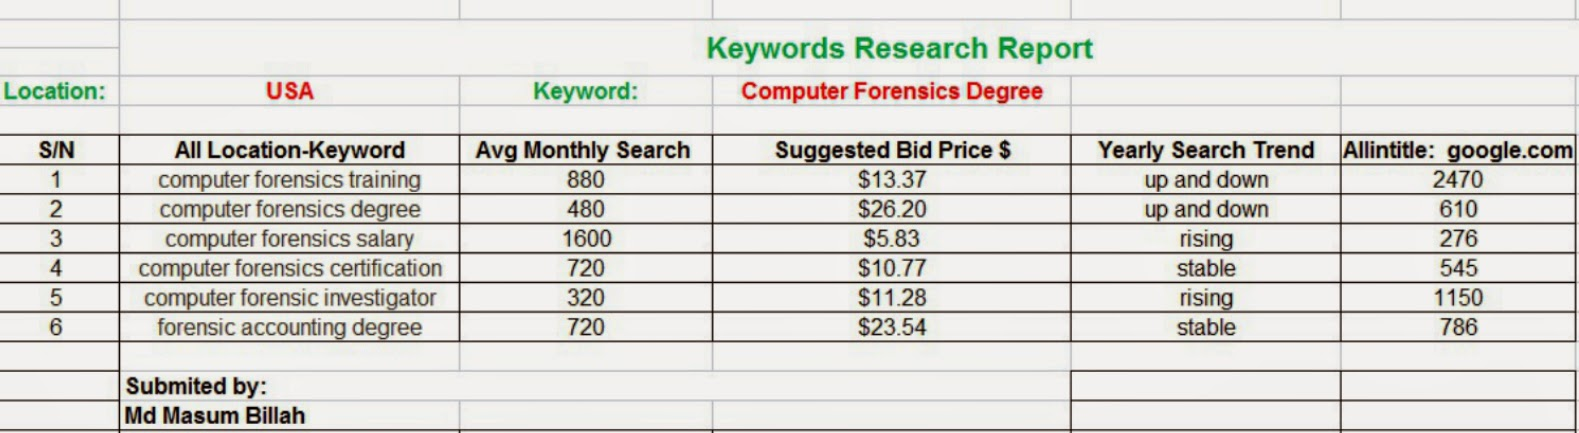 Keyword Research Report